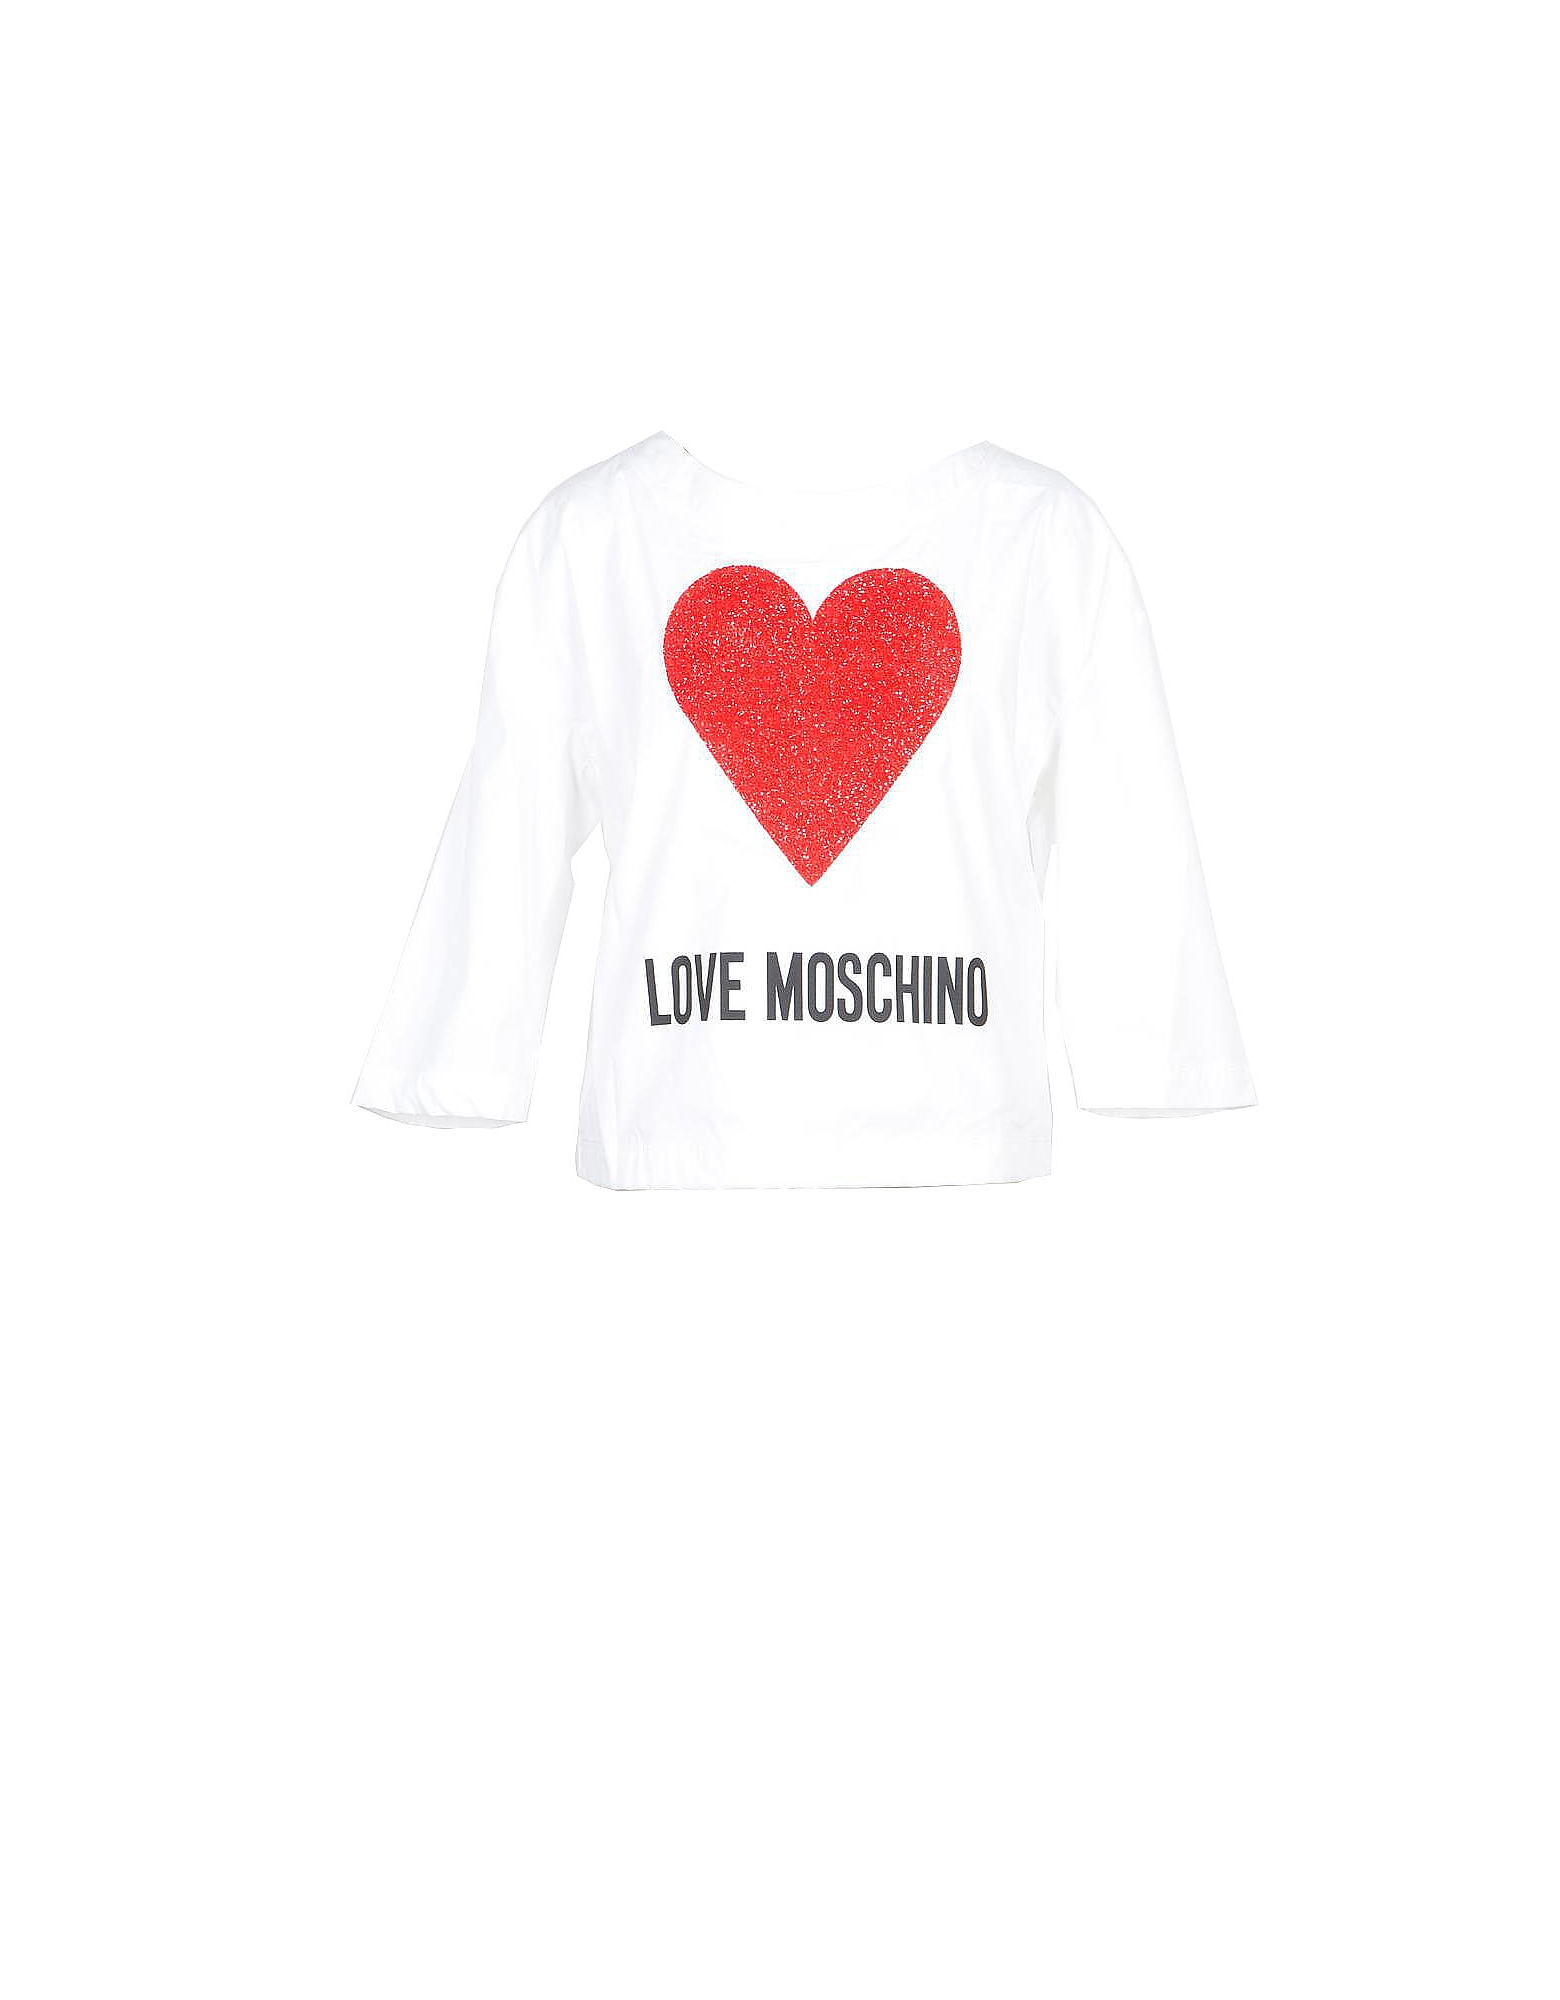 Love Moschino Designer T-Shirts & Tops, White Cotton Women's Long Sleeve T-Shirt w/Crystals Heart